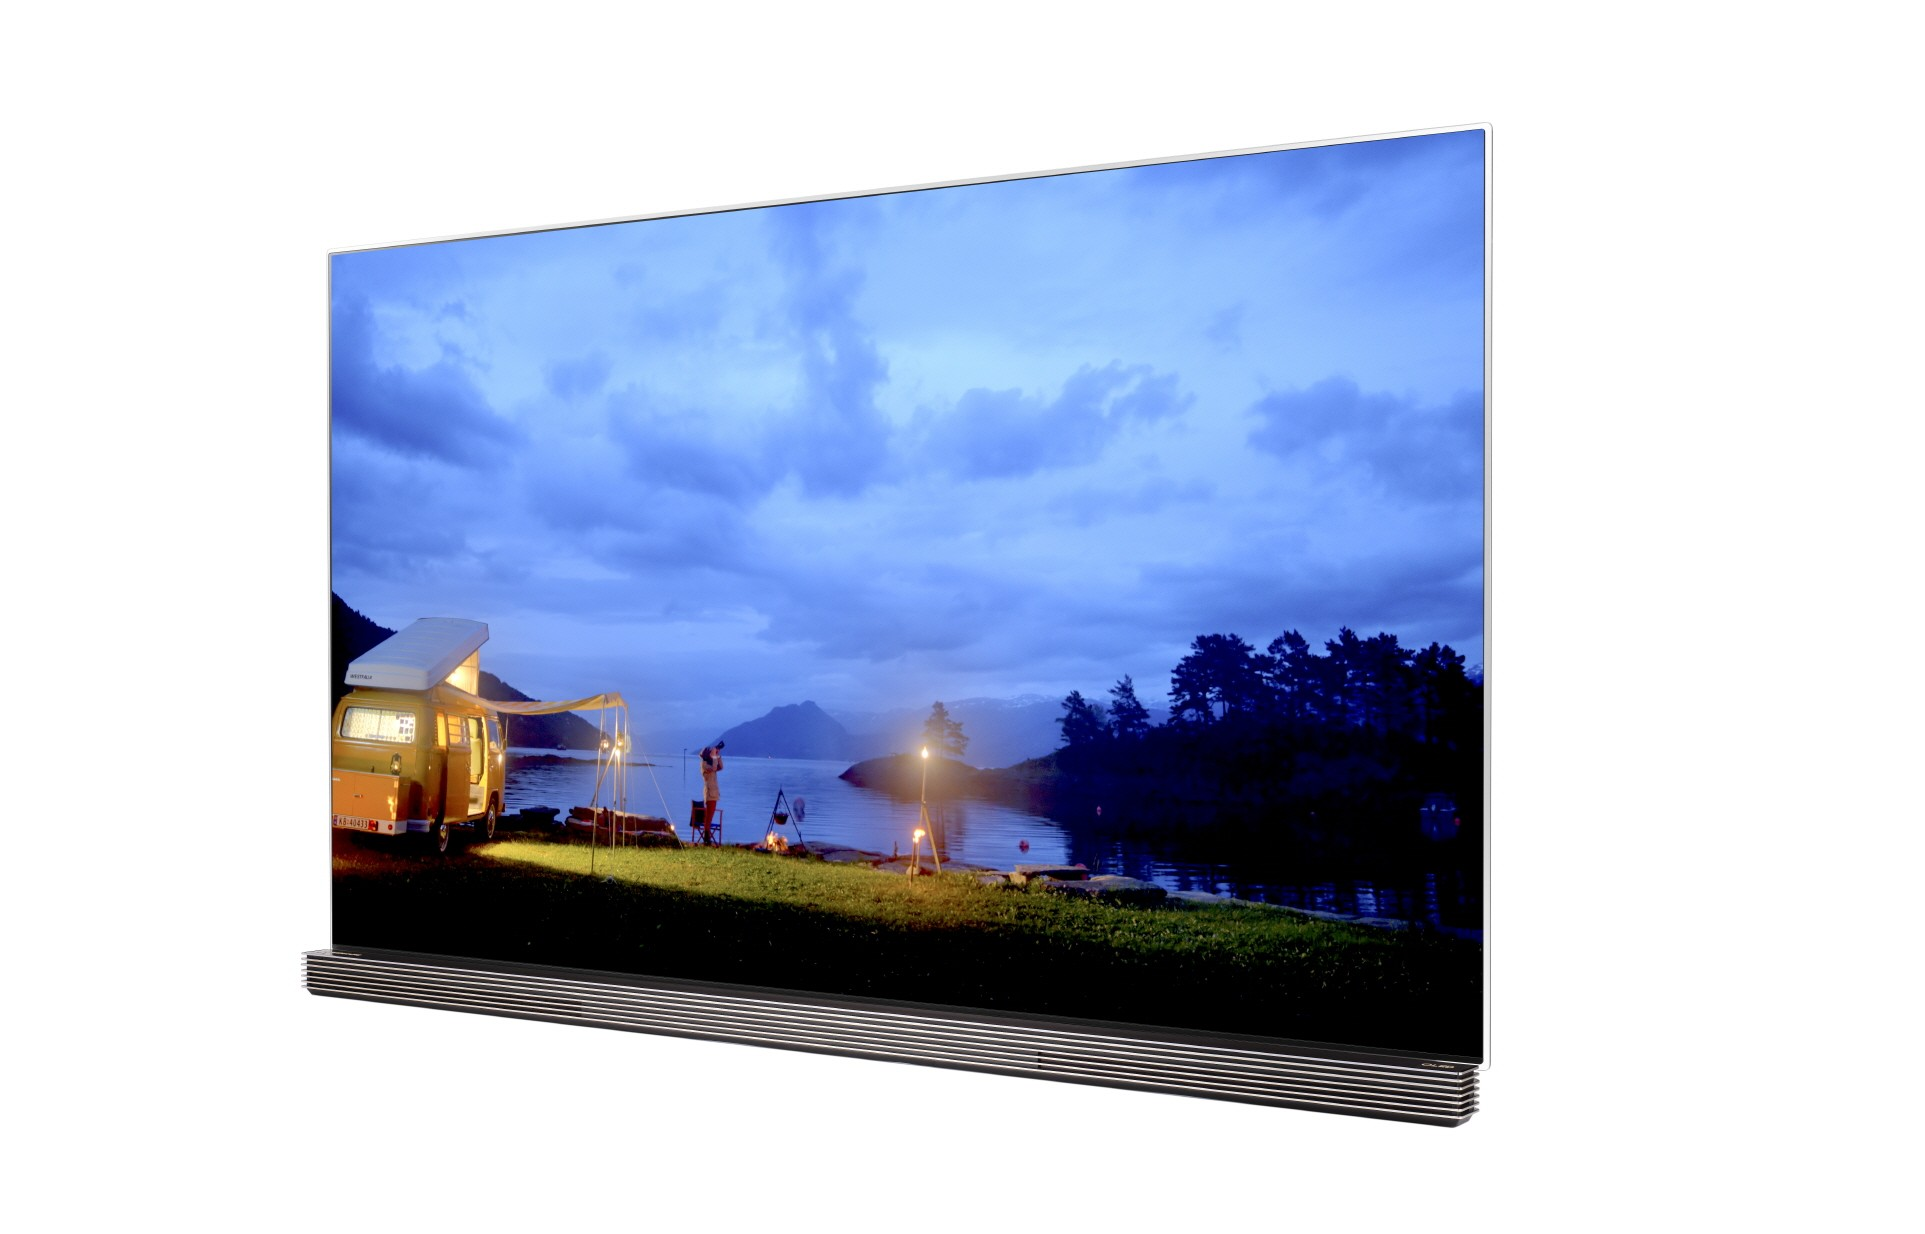 A right-side view of LG OLED TV with HDR